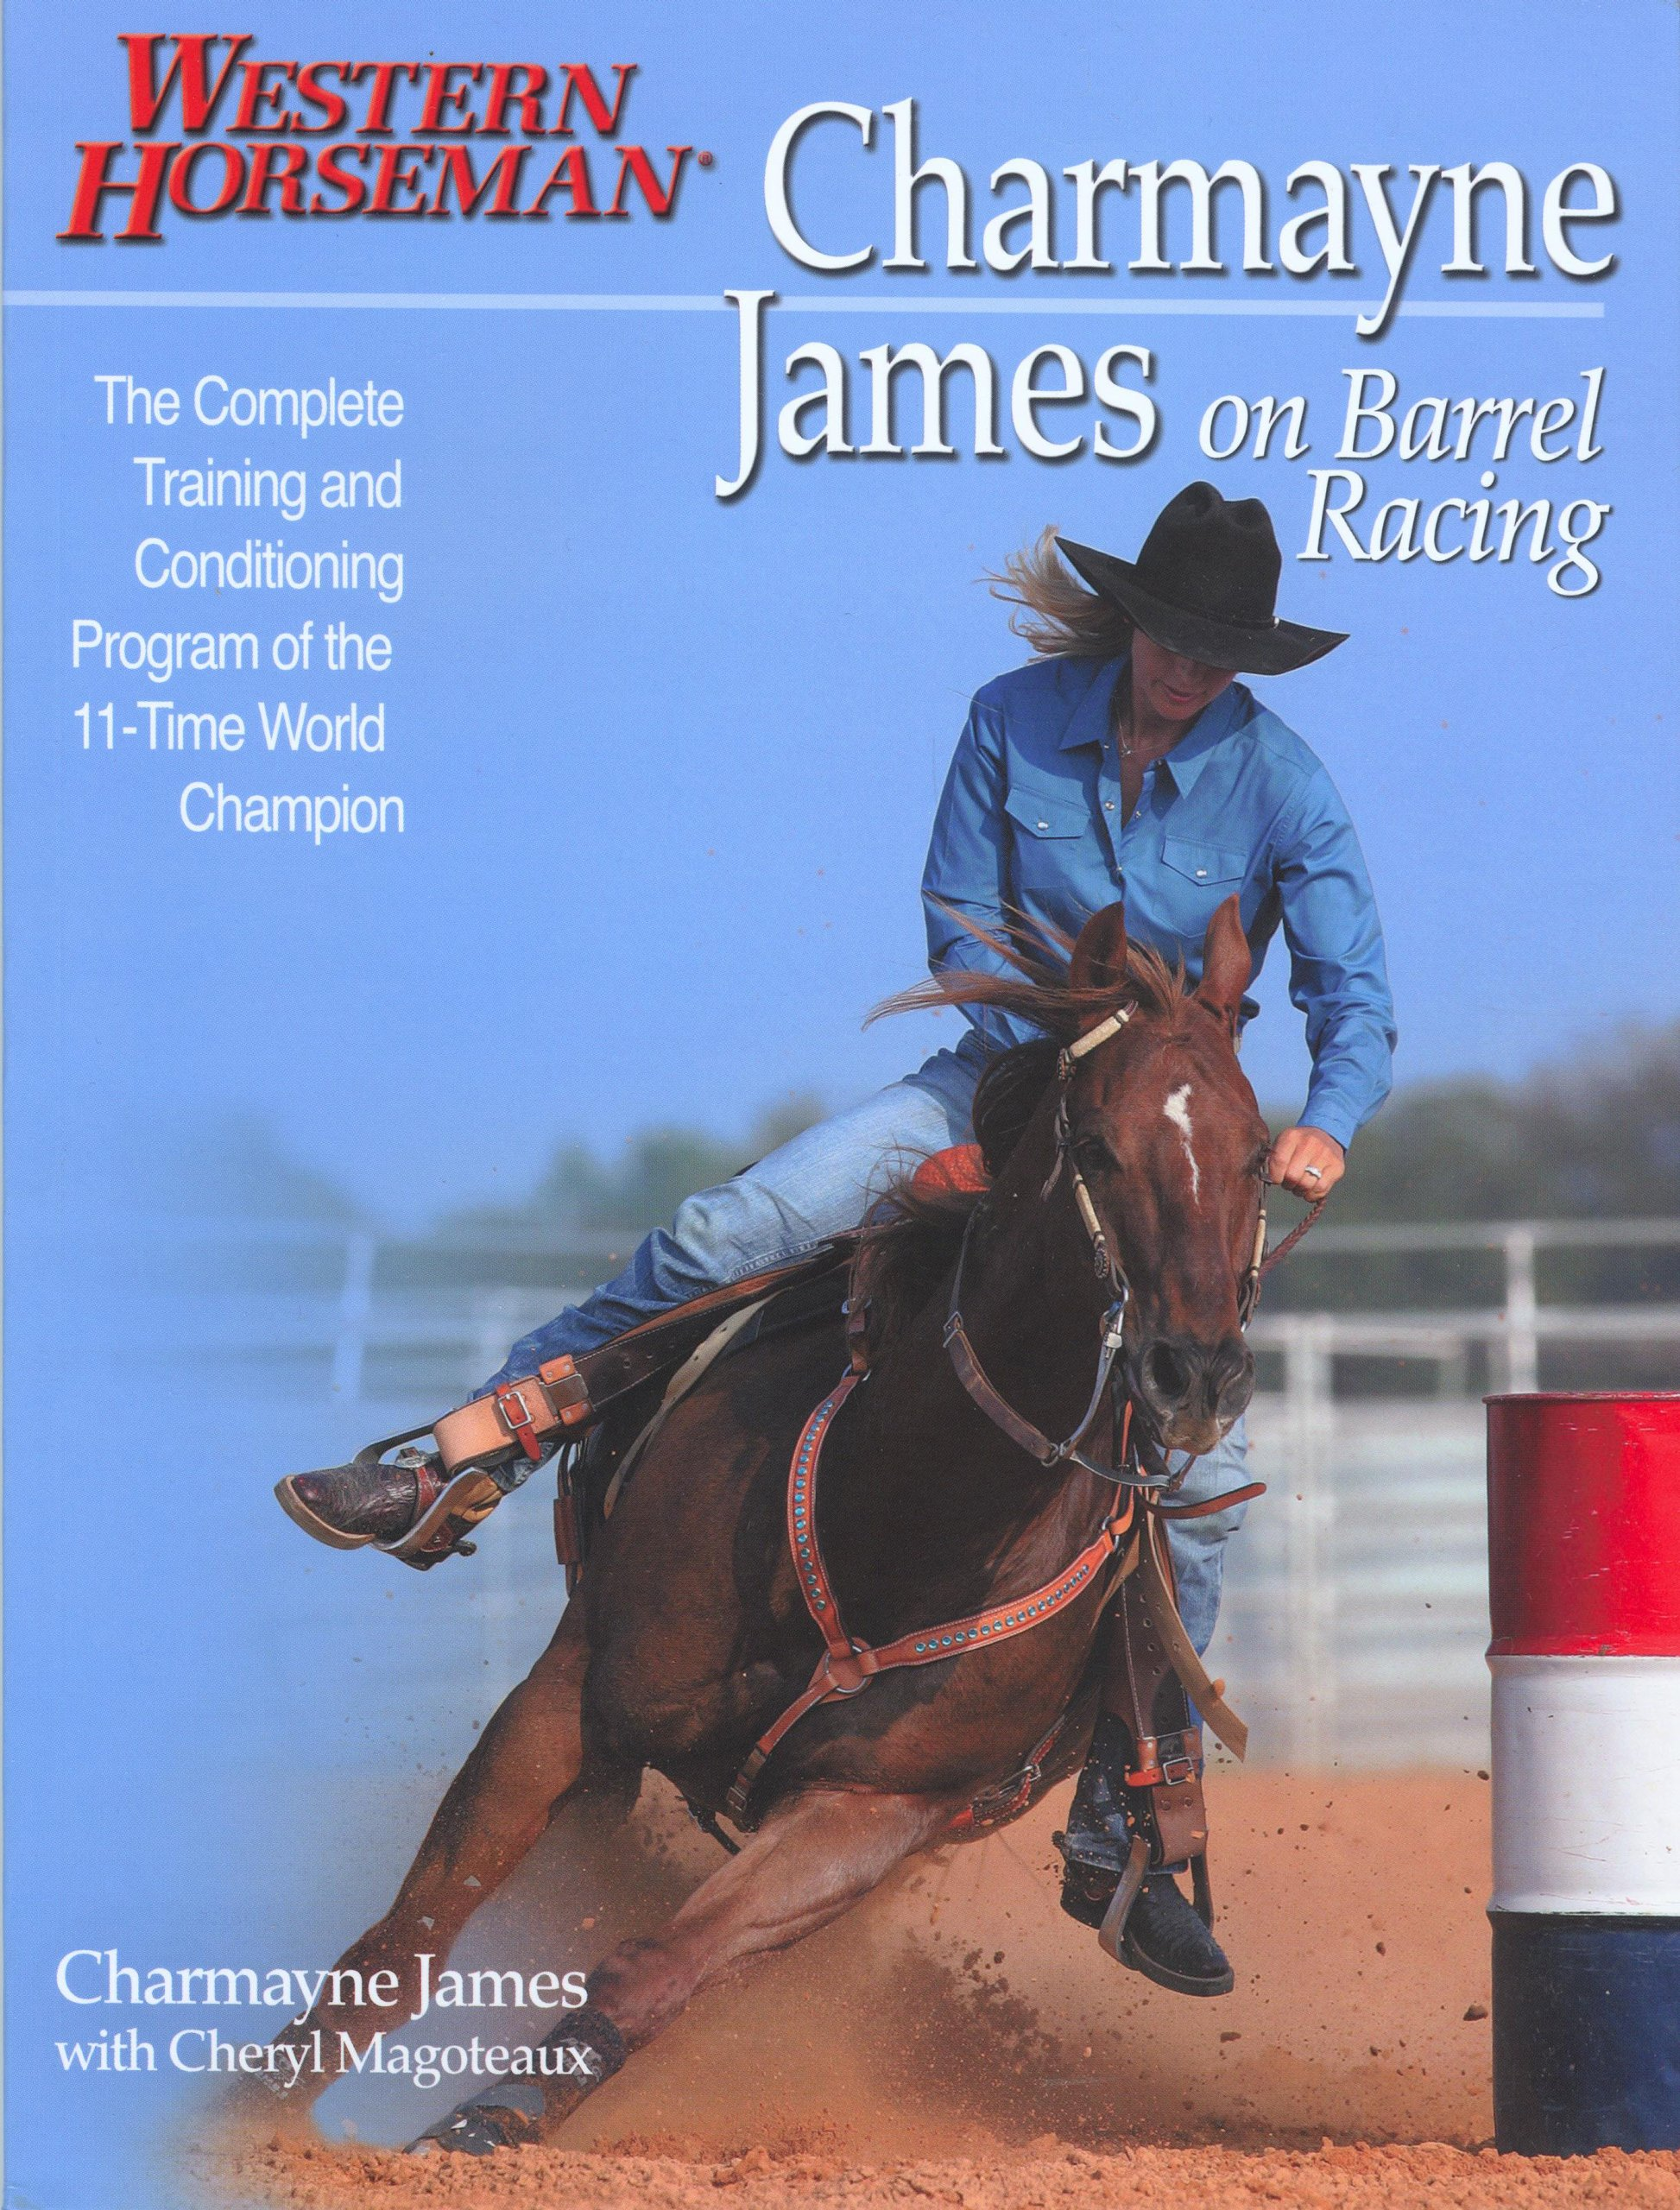 Charmayne James on Barrel Racing (Western Horseman Books) by Western Horseman